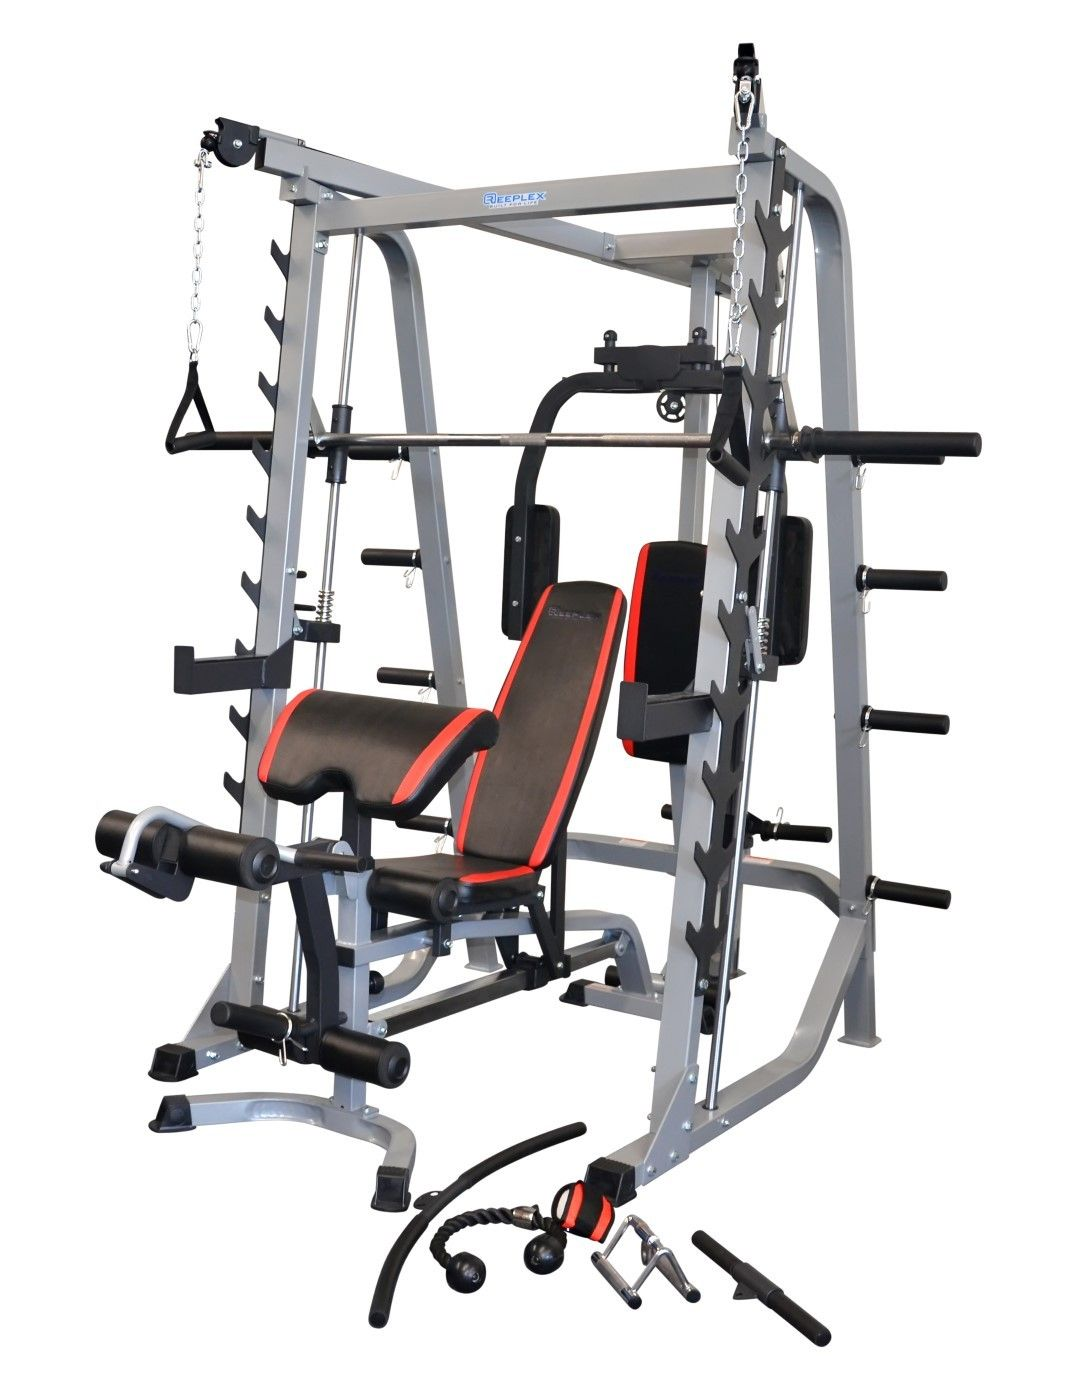 Get home gym equipment in perth prices starting from find